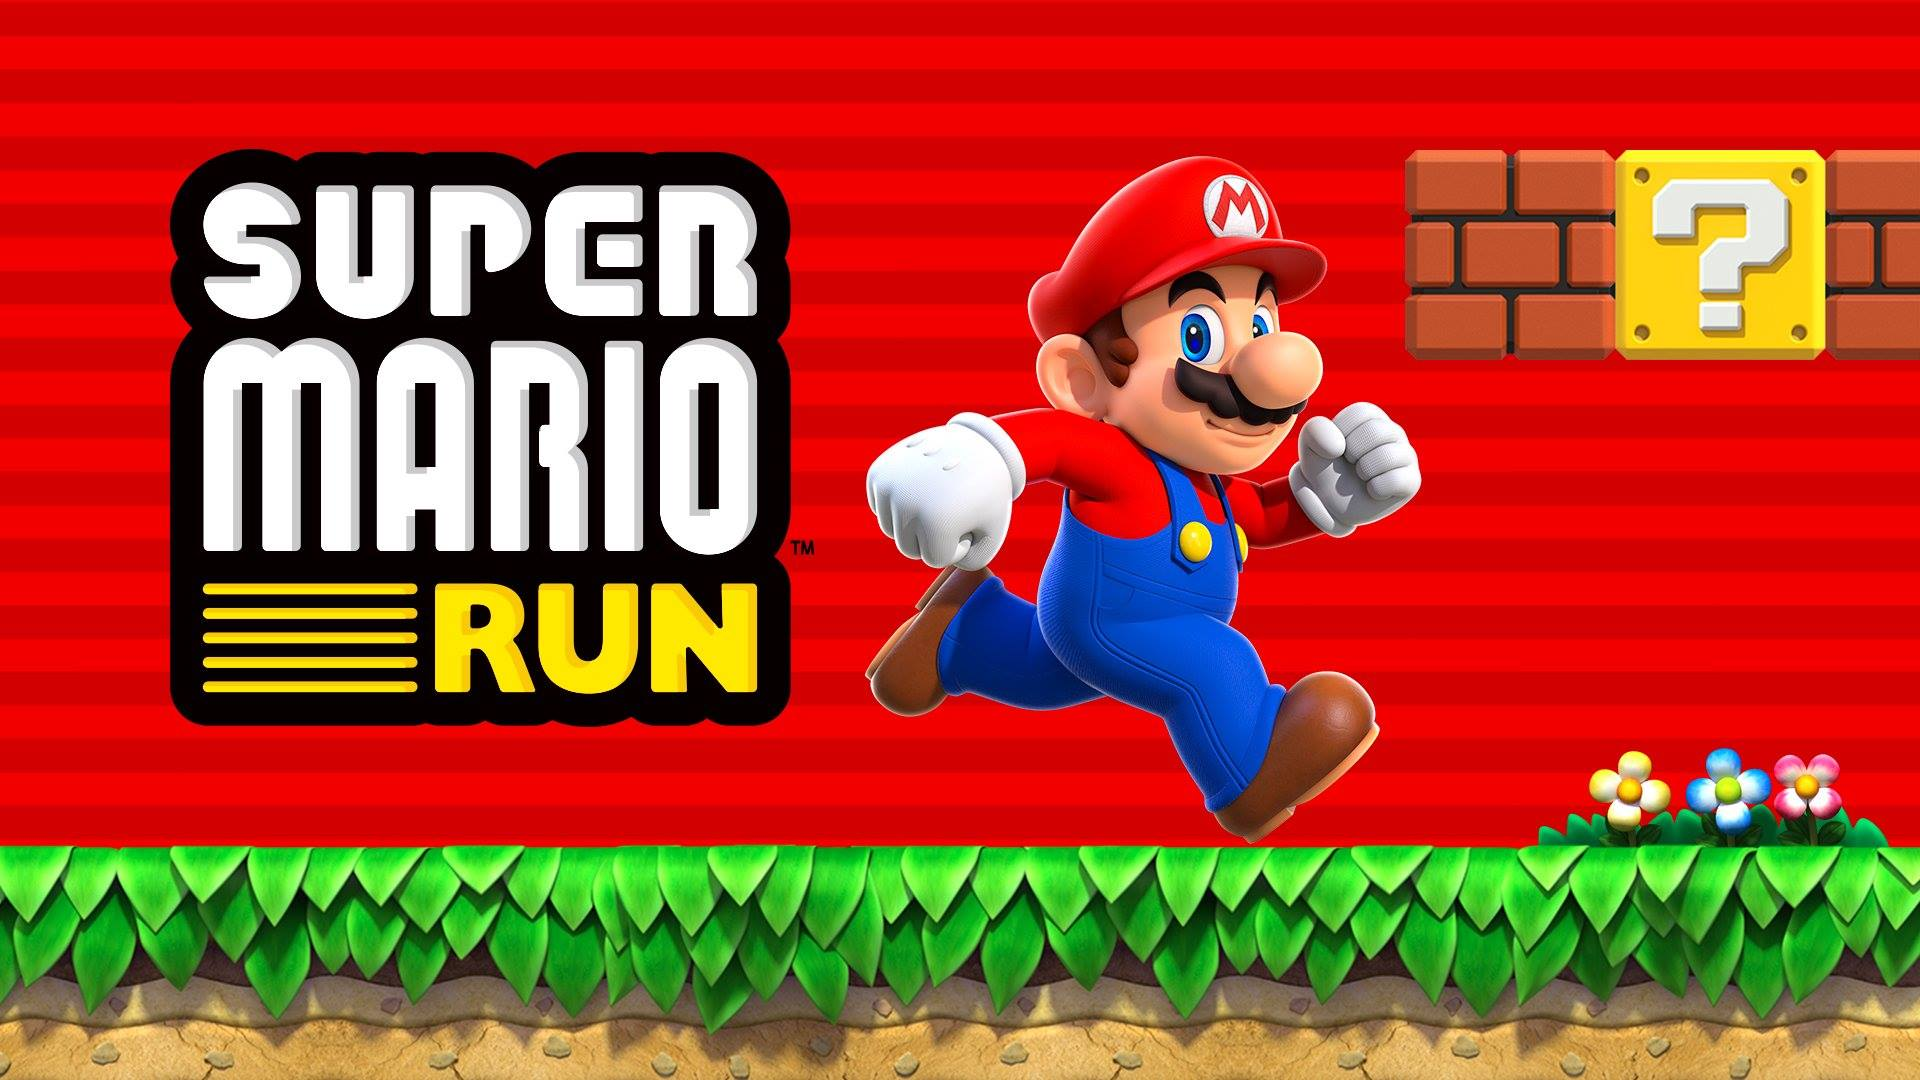 Super Mario Run per iPhone: dal 15 dicembre scaricabile su iTunes